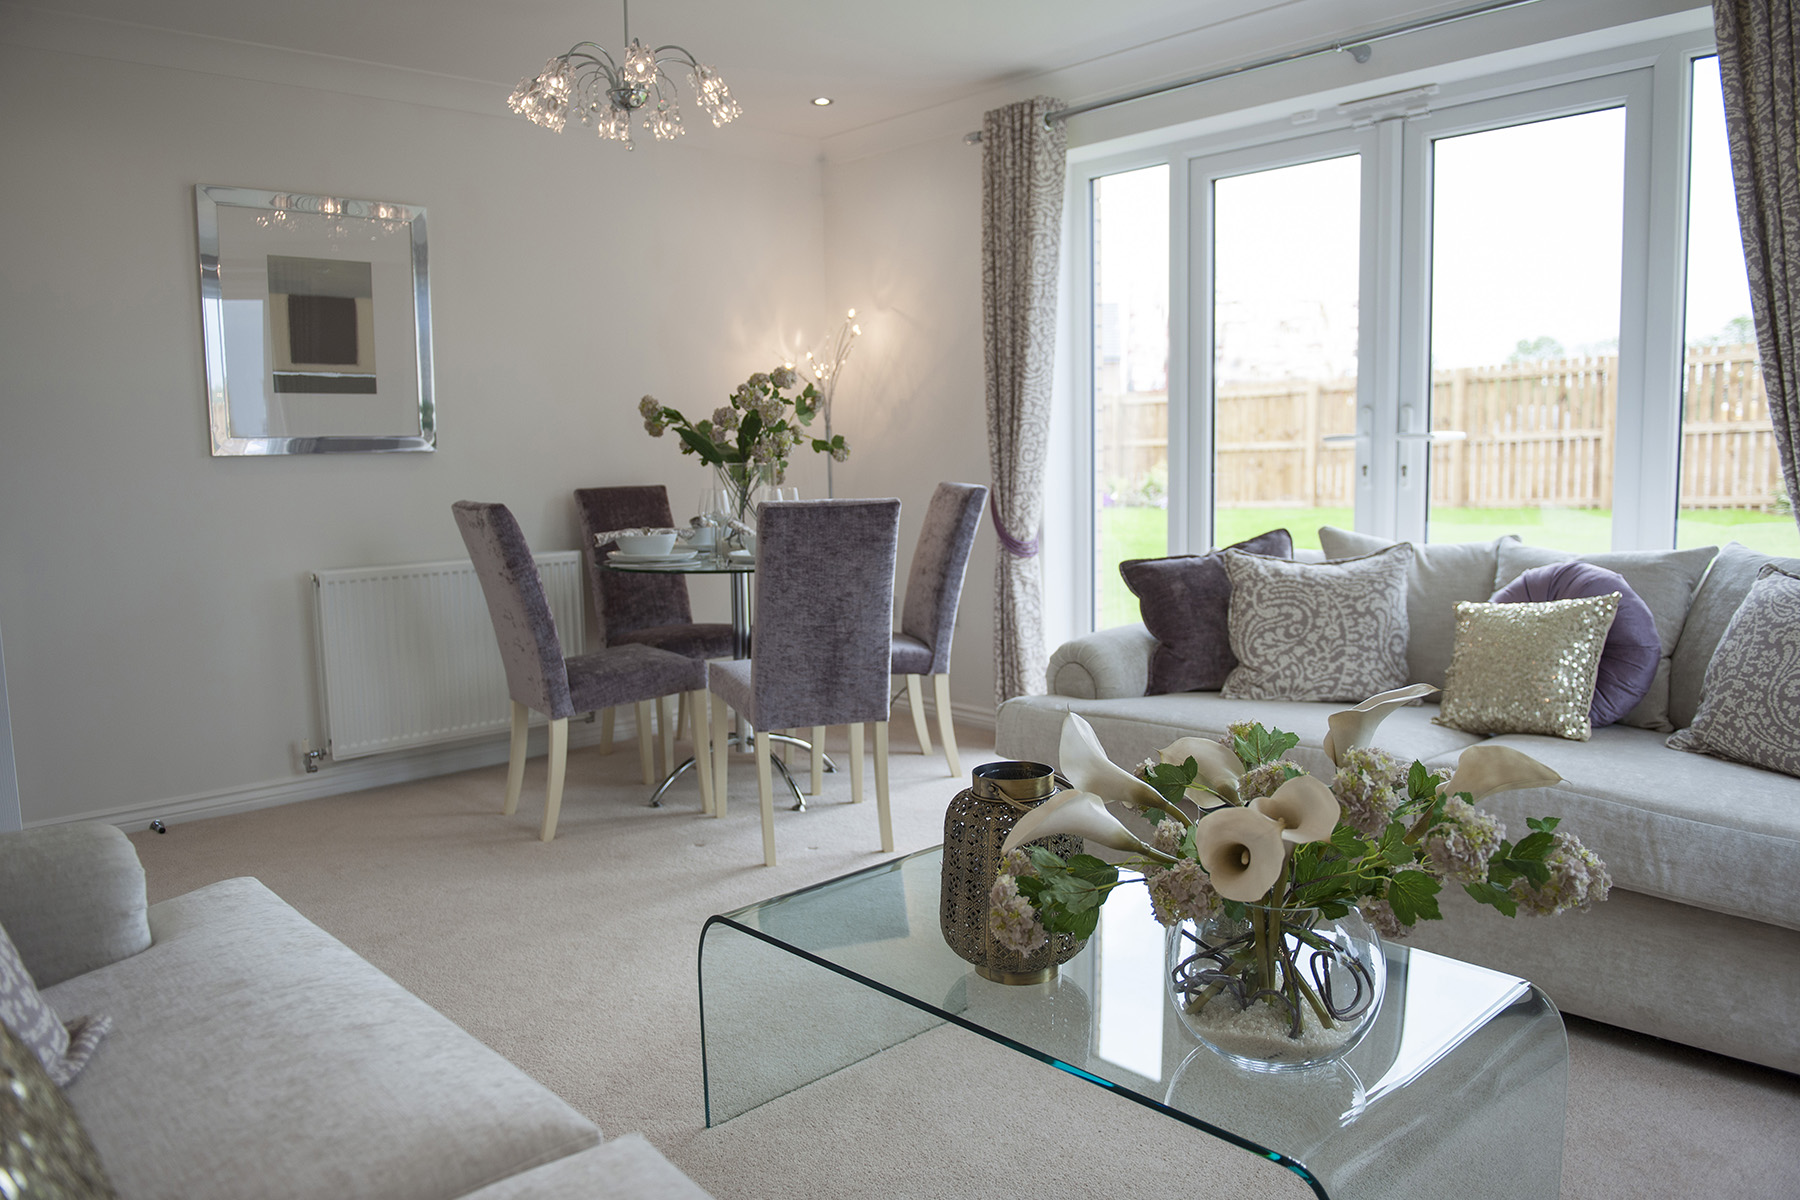 Walkers gate new homes for sale in kilmarnock taylor for Living room kilmarnock